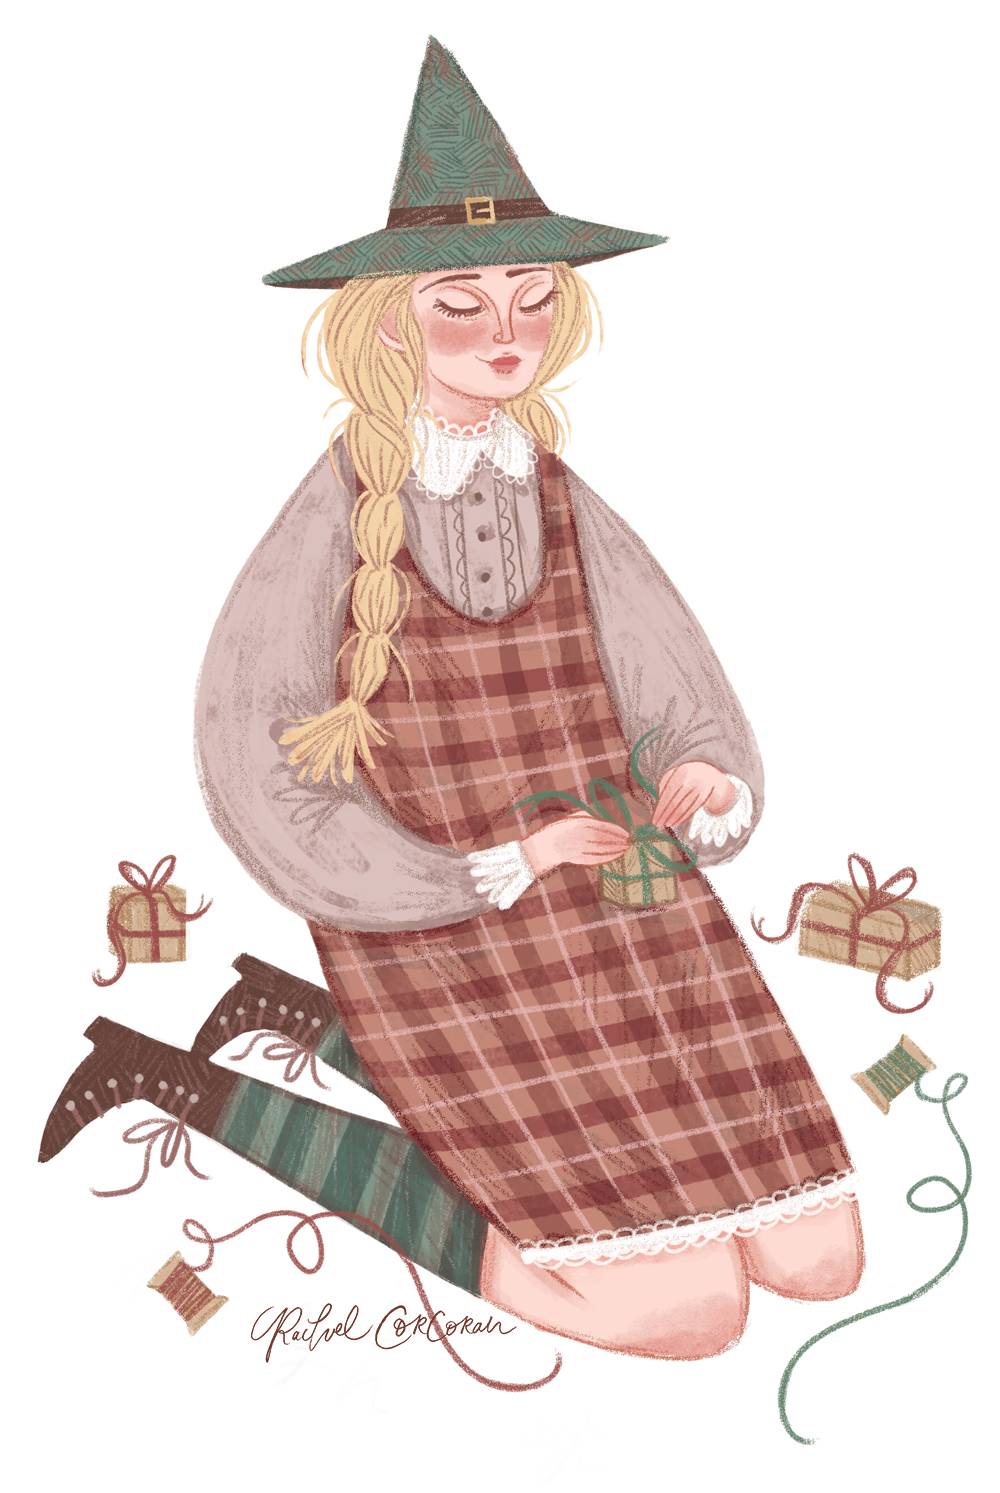 Witch craft illustration by Rachel Corcoran